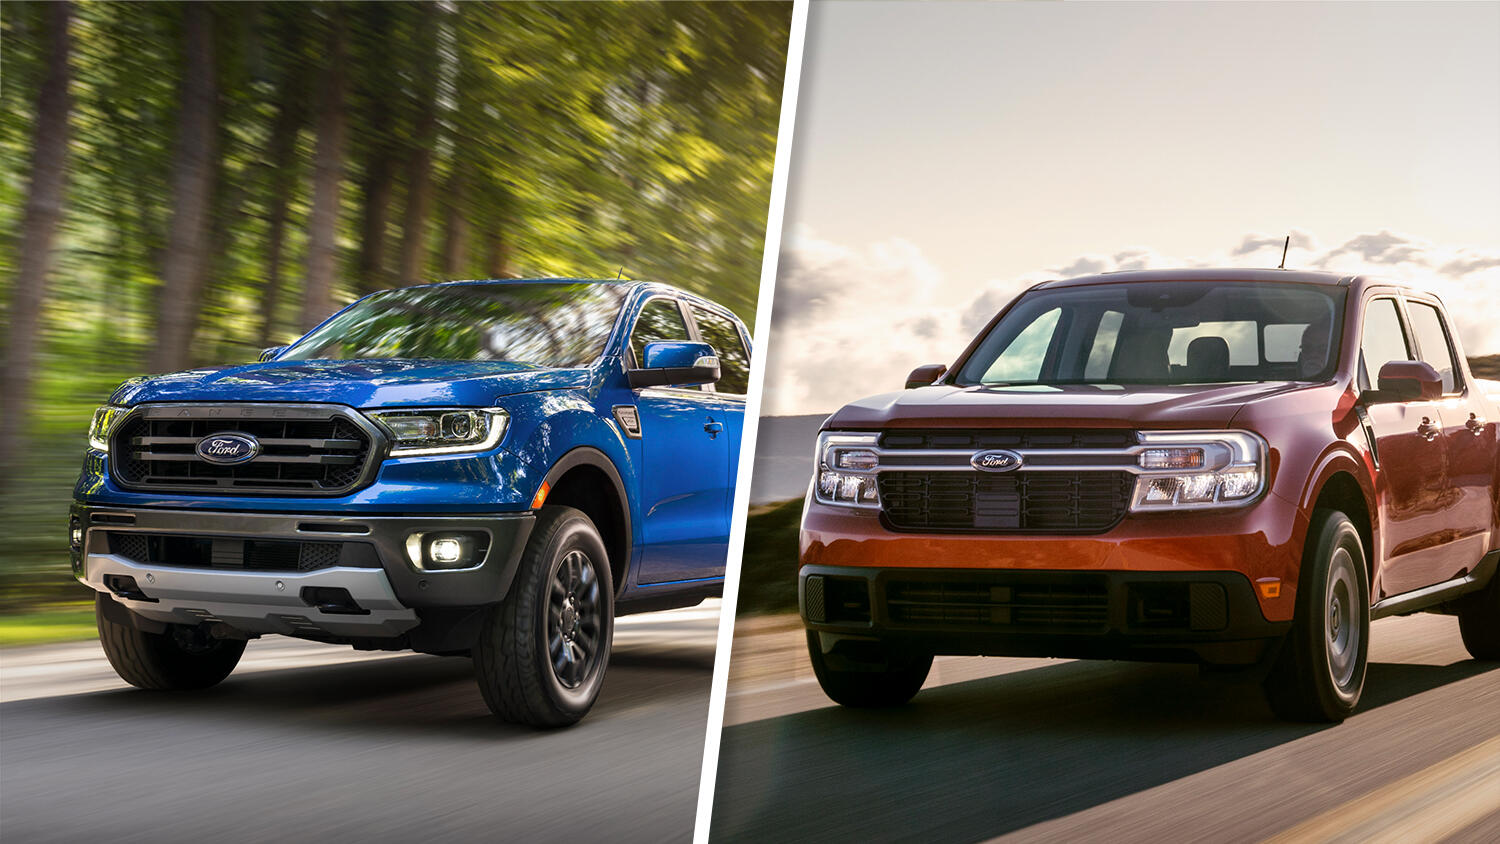 Video: Ford vs. Ford: Digging into the numbers of the Maverick and Ranger